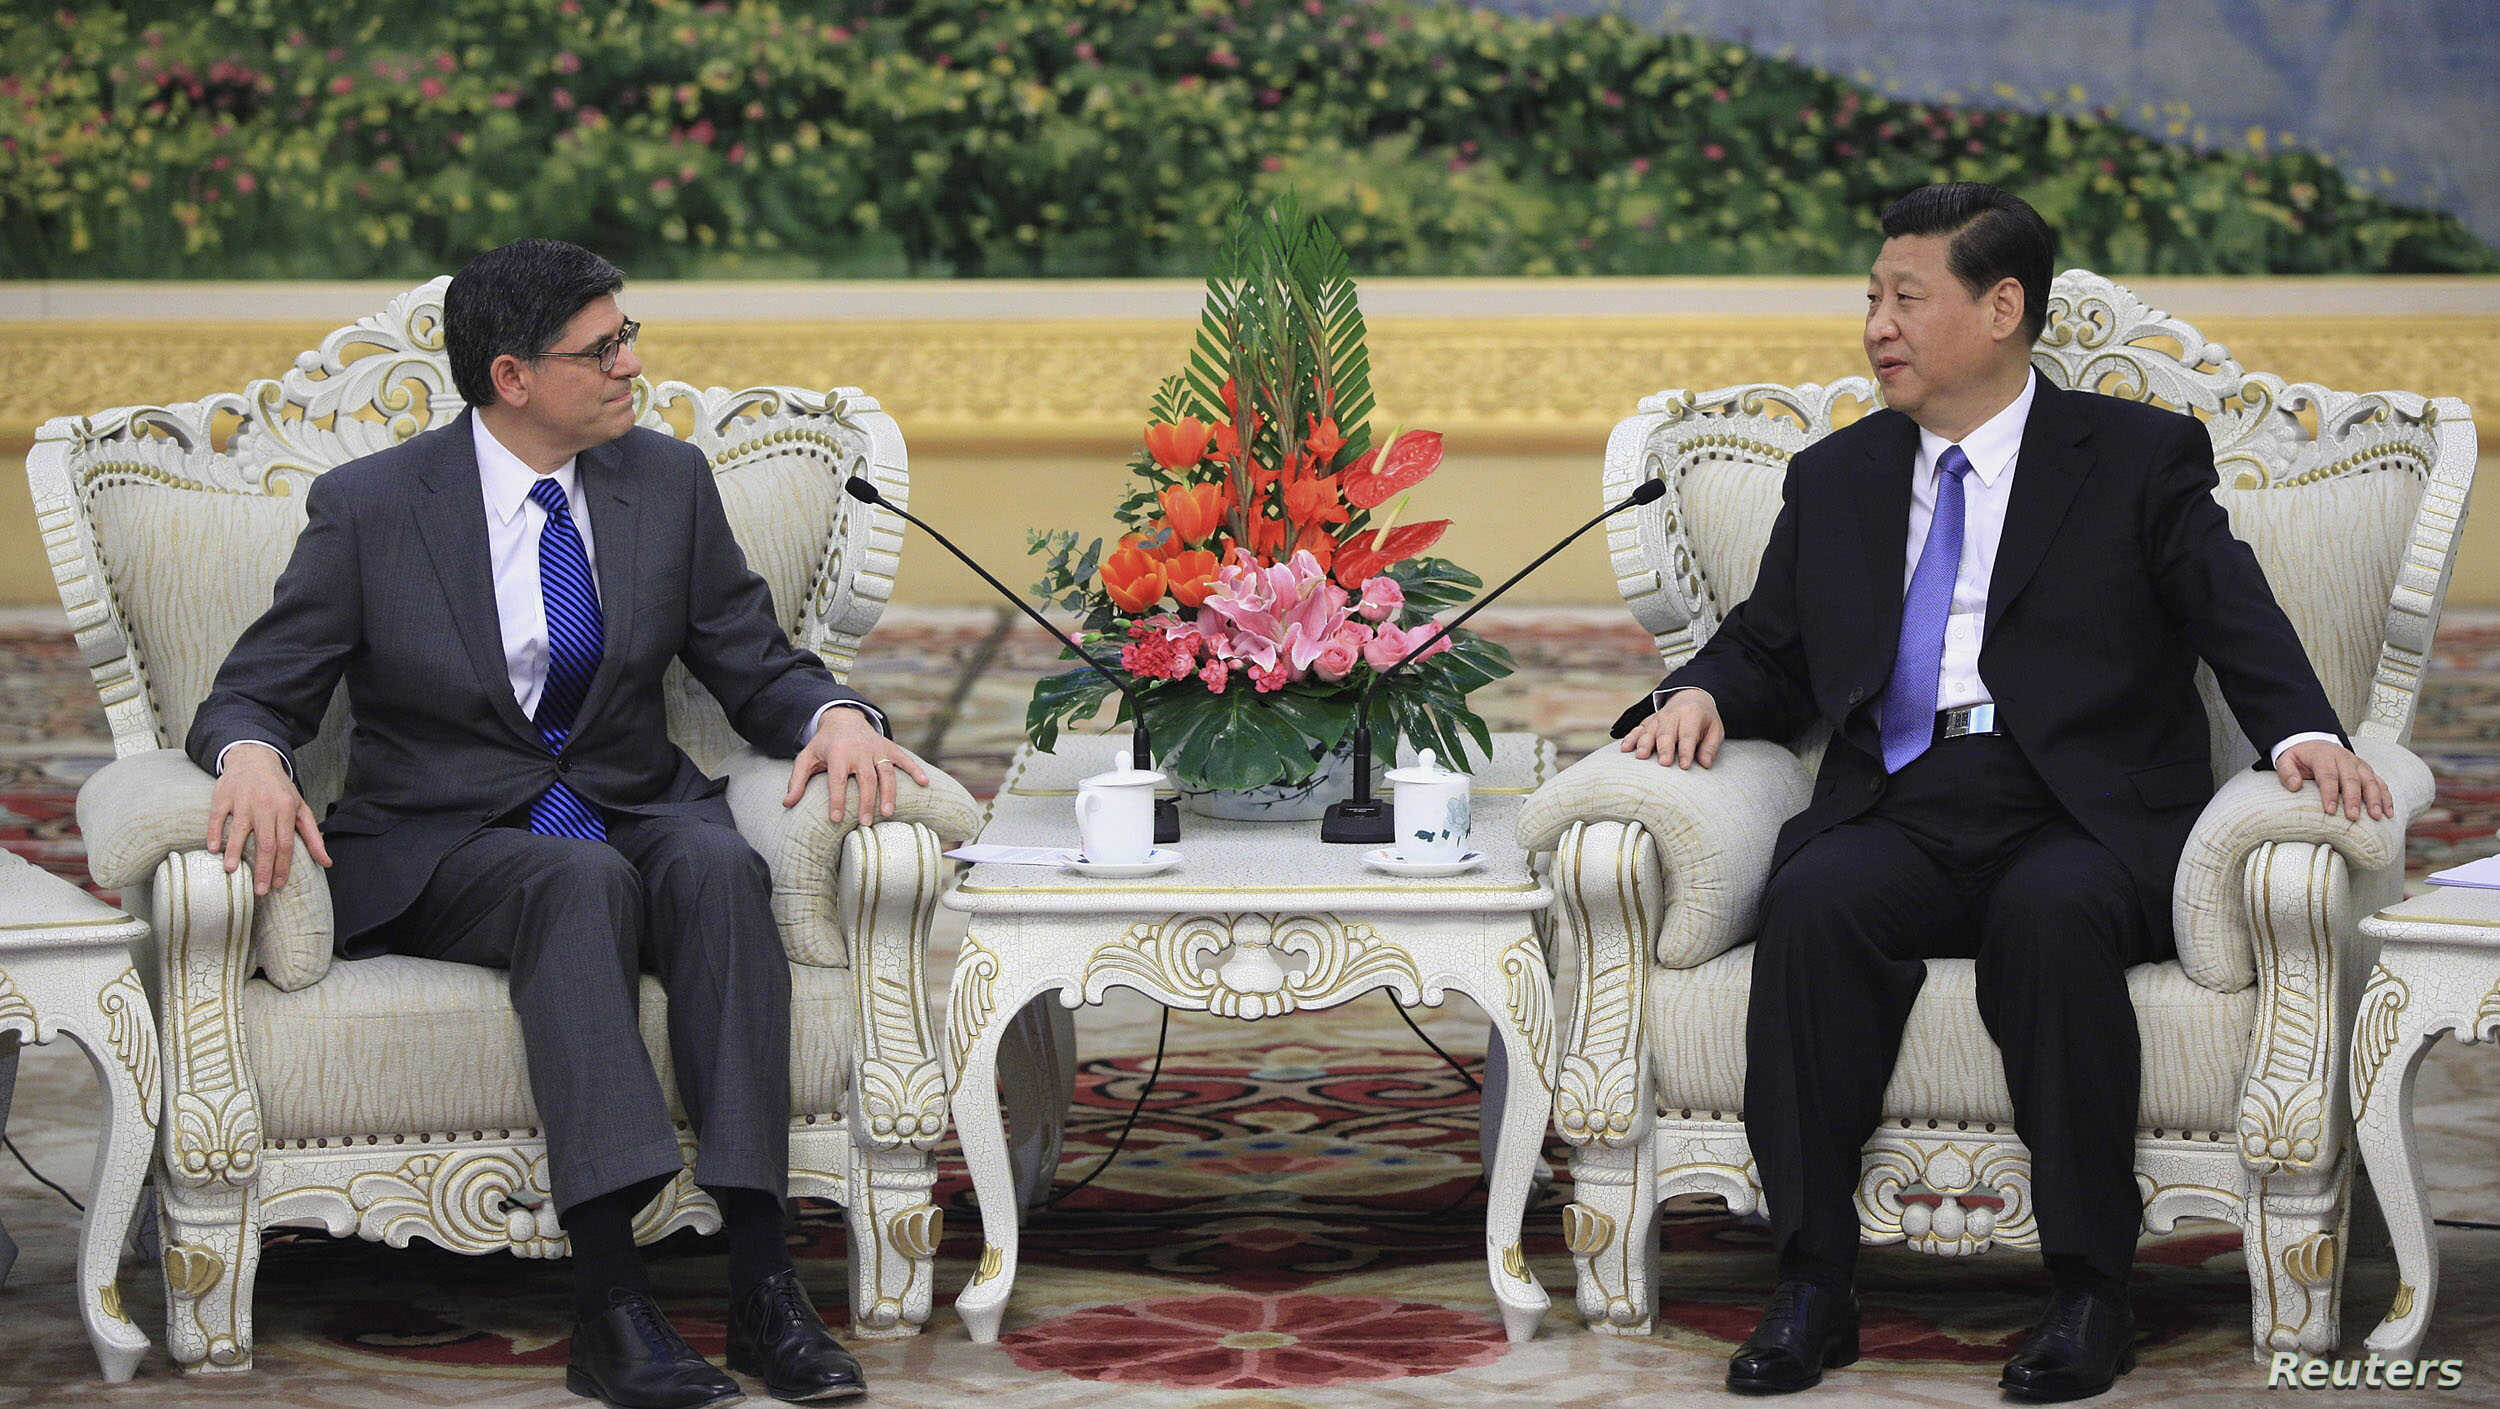 U.S. Treasury Secretary Jacob Lew (L) speaks with China's President Xi Jinping during their meeting at the Great Hall of the People in Beijing, March 19, 2013.